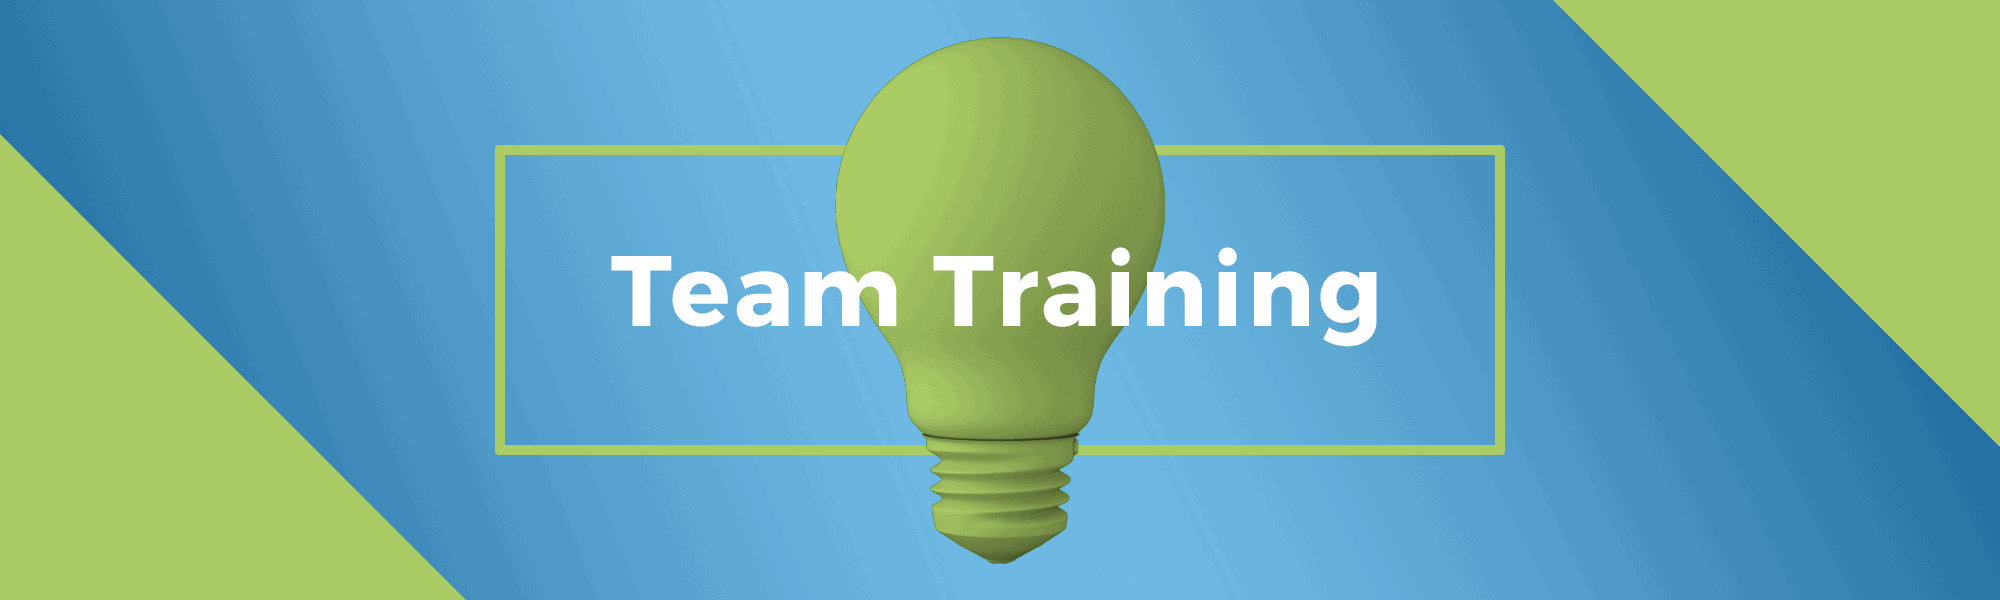 M2F Banners_TeamTraining